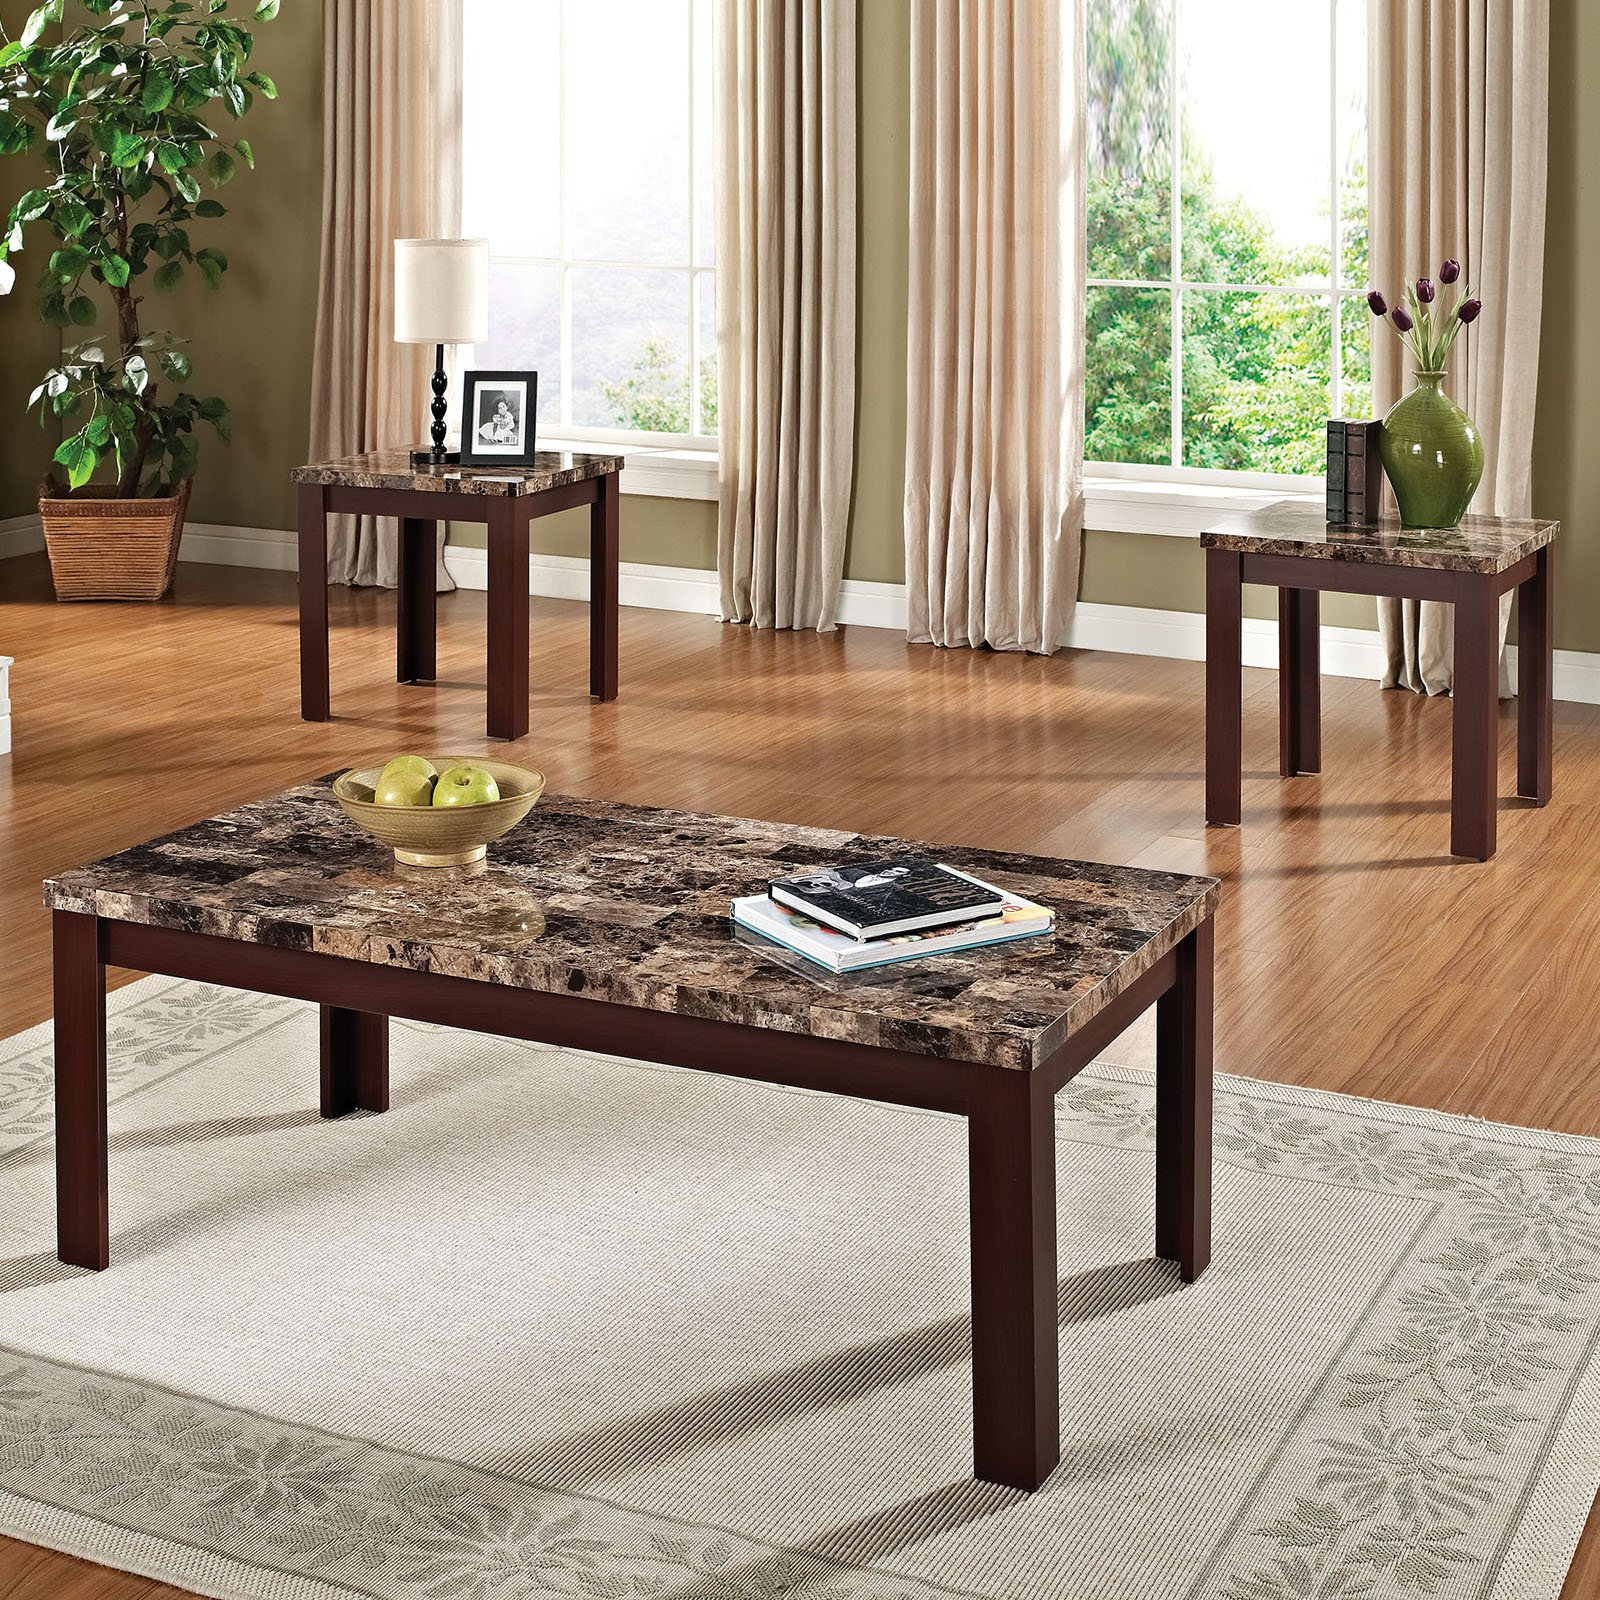 faux marble piece coffee and end table set brown cherry wood tables modern furniture ers stanley young america armoire glass wooden side plum norwood home drawing room designs